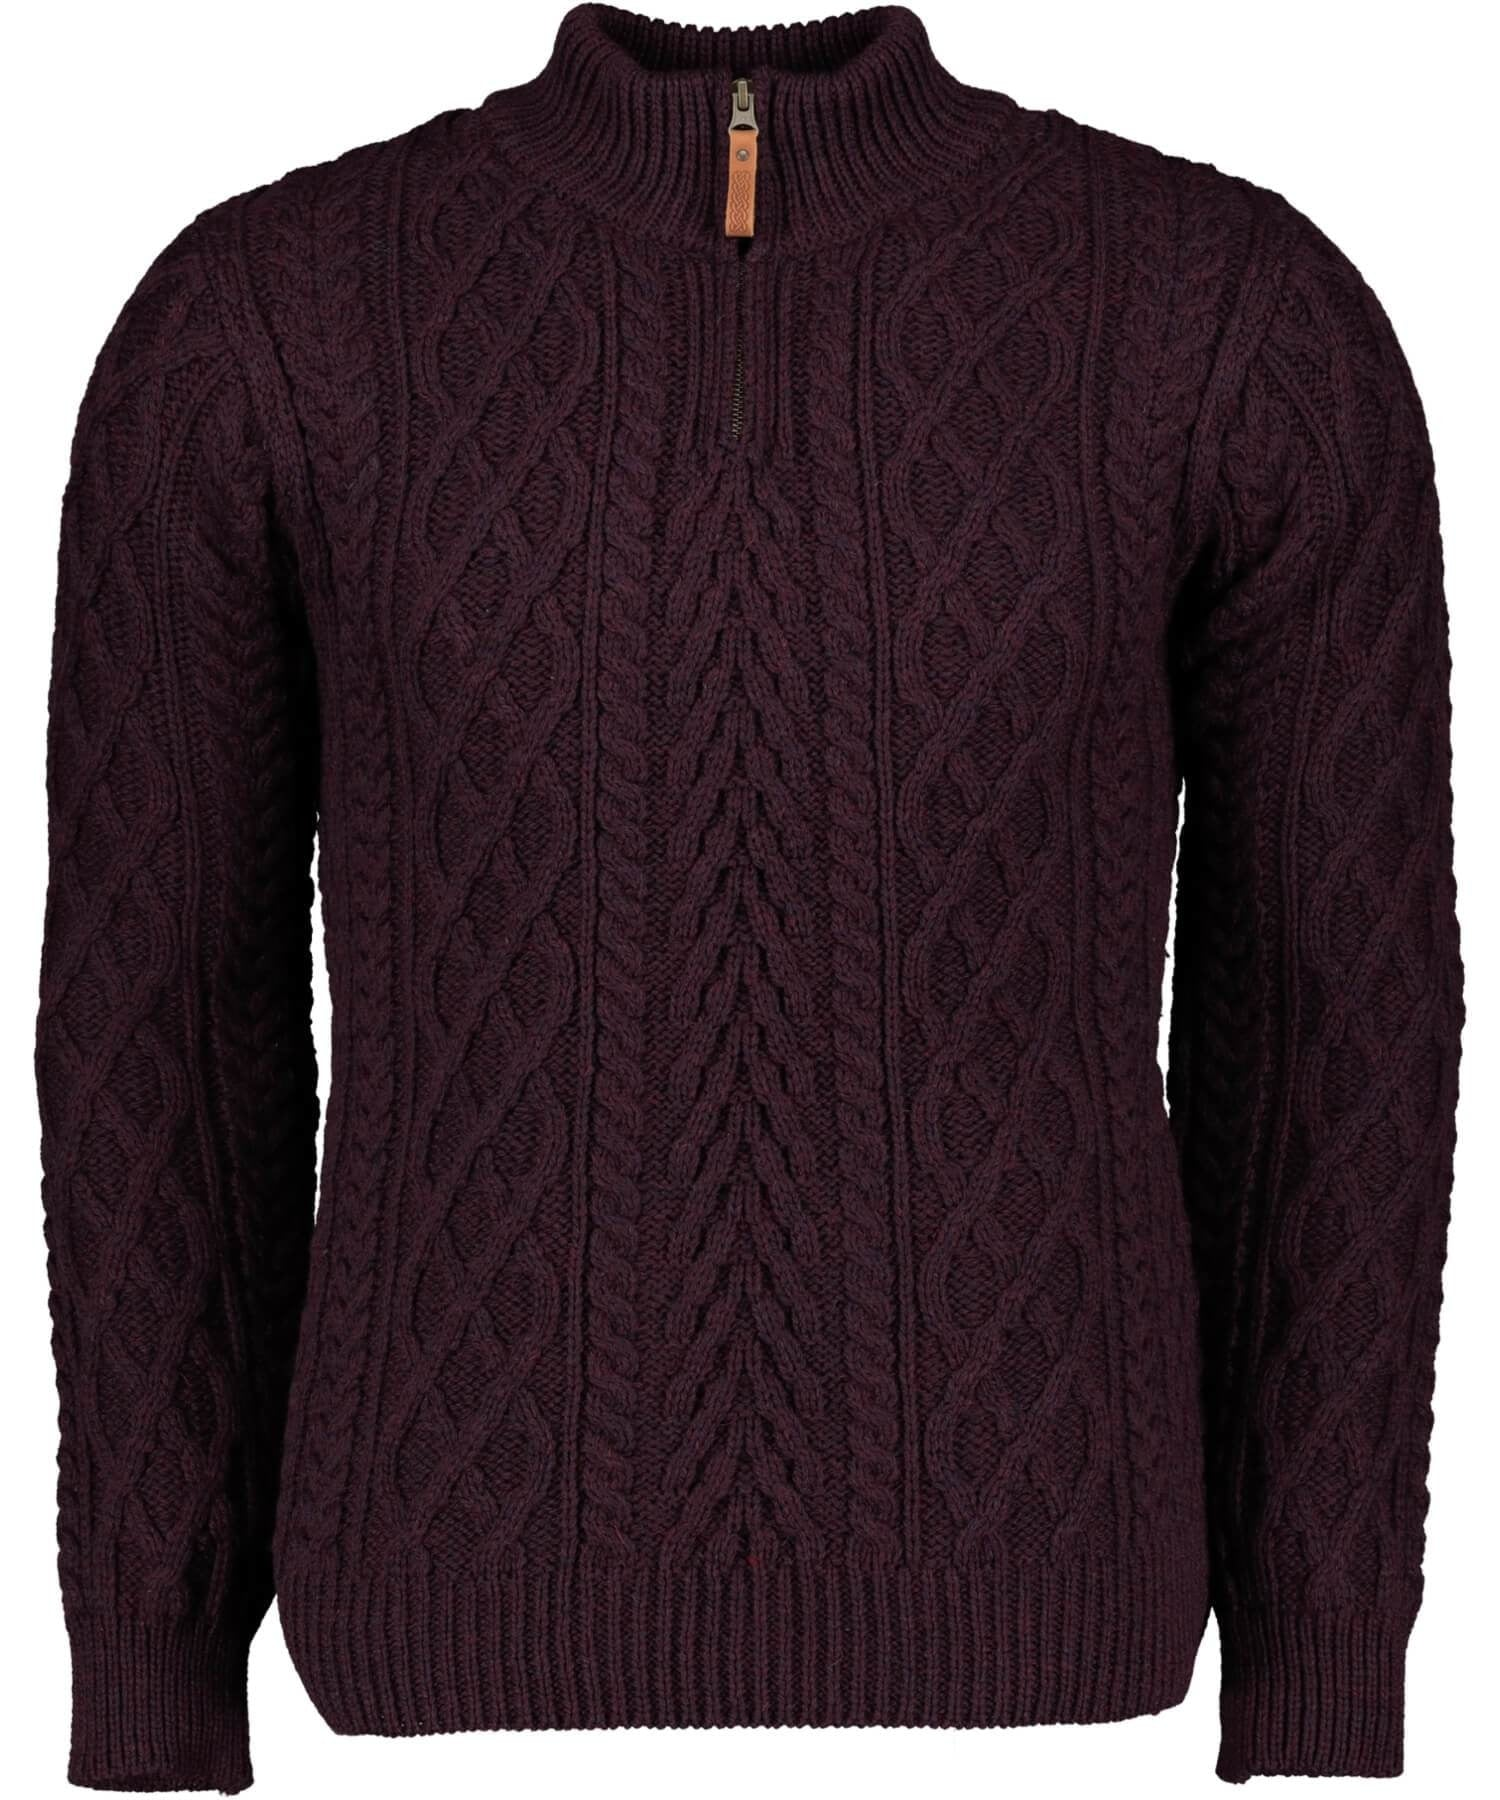 Donegal Half Zip Sweater - Damson - [Aran Crafts] - Mens Sweaters & Cardigans - Irish Gifts